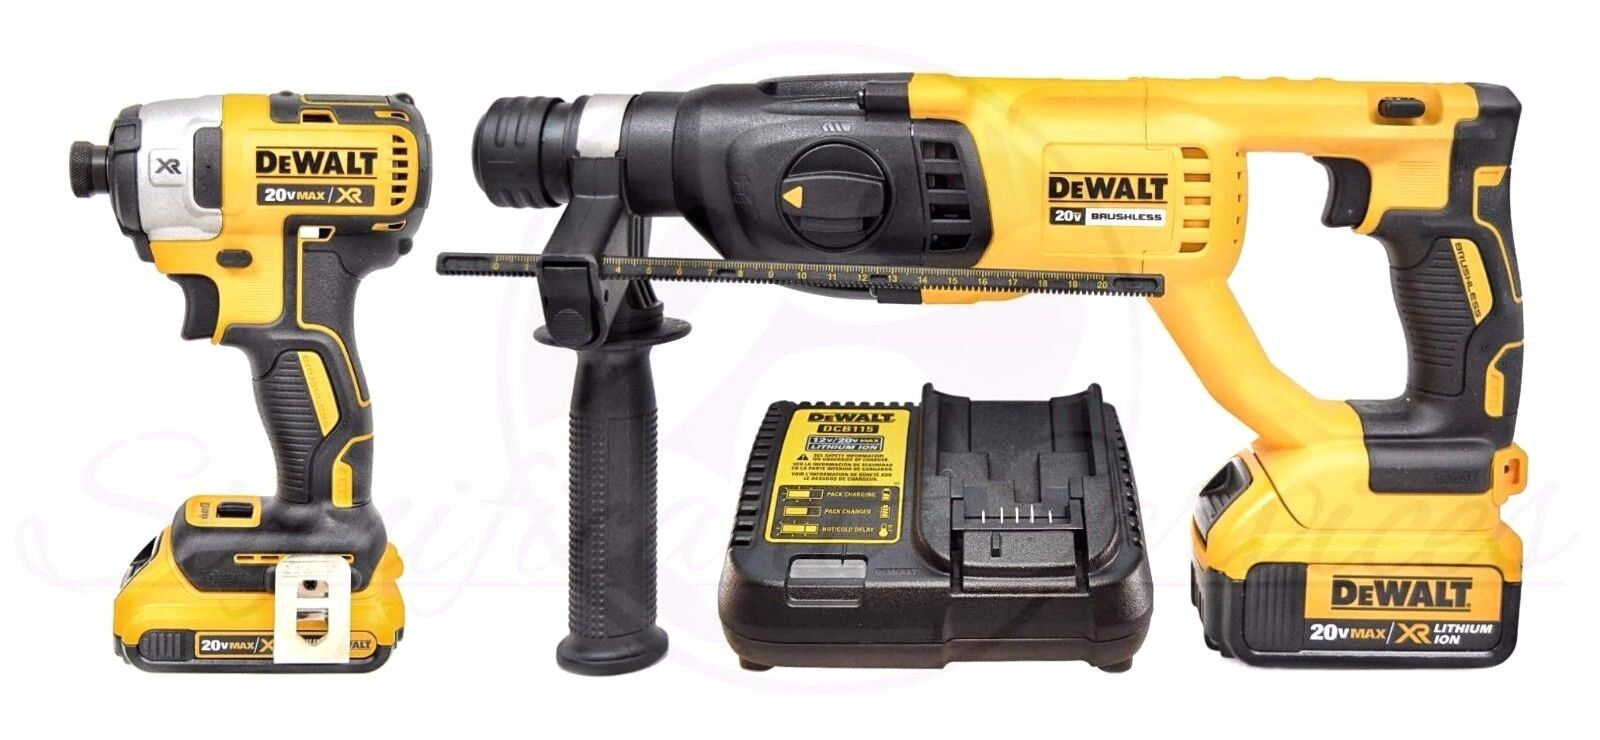 Details about NEW DeWALT 20V MAX XR Li-Ion Brushless Impact Driver SDS  Hammerdrill Combo Kit